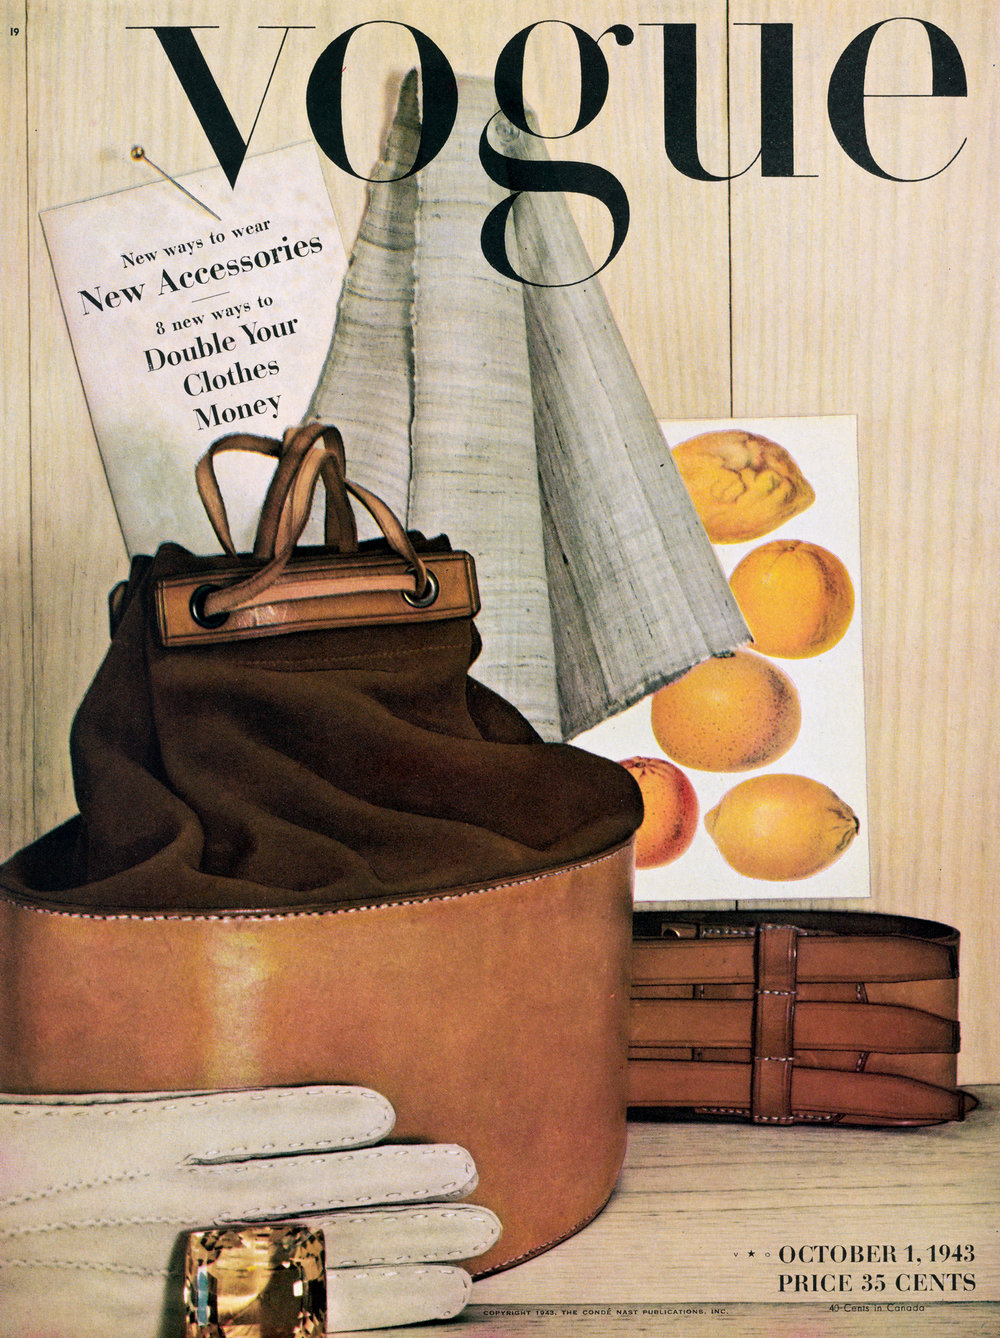 Irving Penn, Vogue Cover, October 1, 1943. © Condé Nast